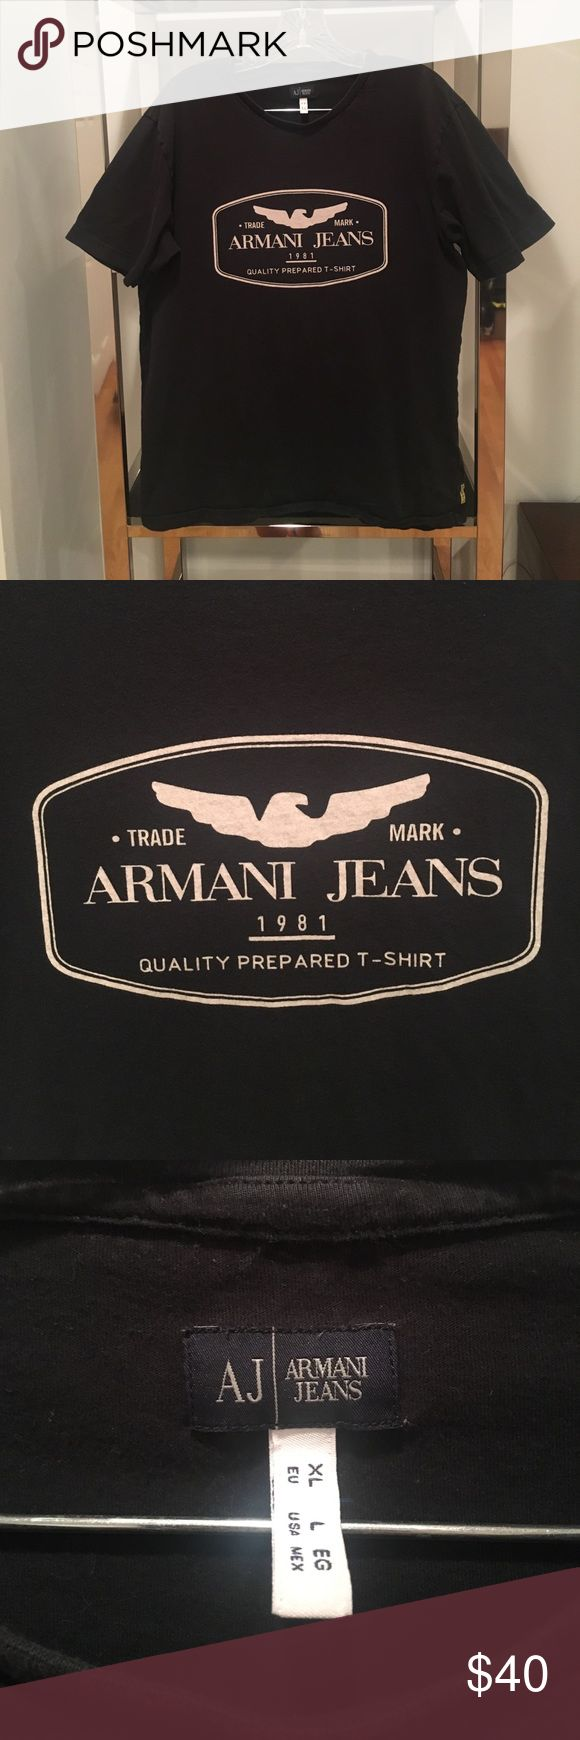 ARMANI JEANS LOGO PRINT T SHIRT Condition: Mint Fabric: 100% Cotton Designer: Armani Jeans Armani Jeans Shirts Tees - Short Sleeve